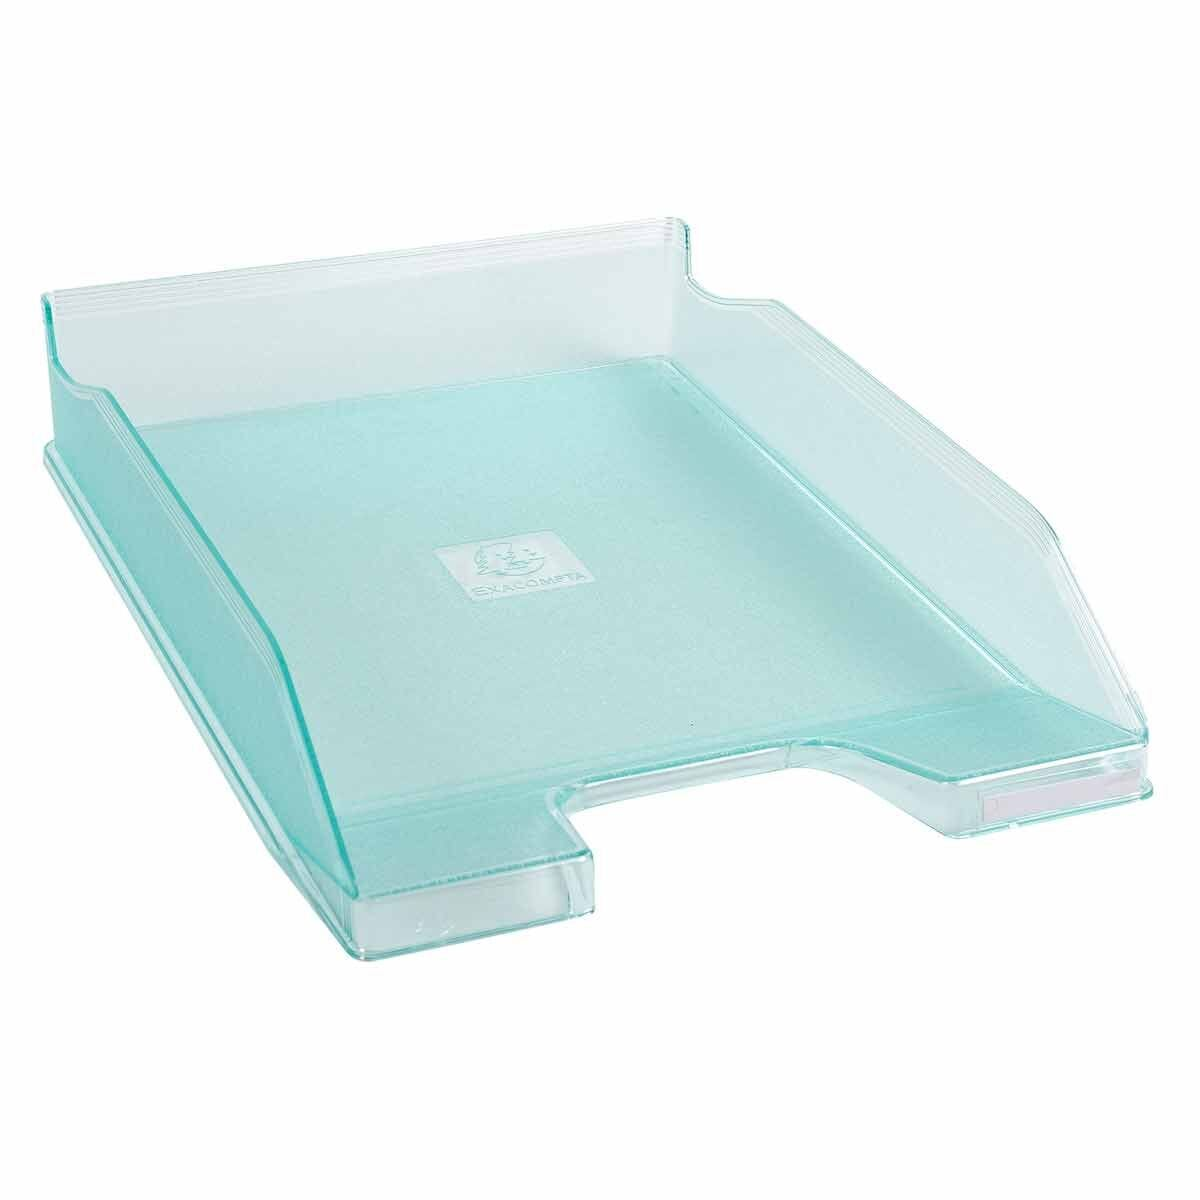 Exacompta Office Letter Tray Midi Combo Pack of 6 Translucent Matte Glass